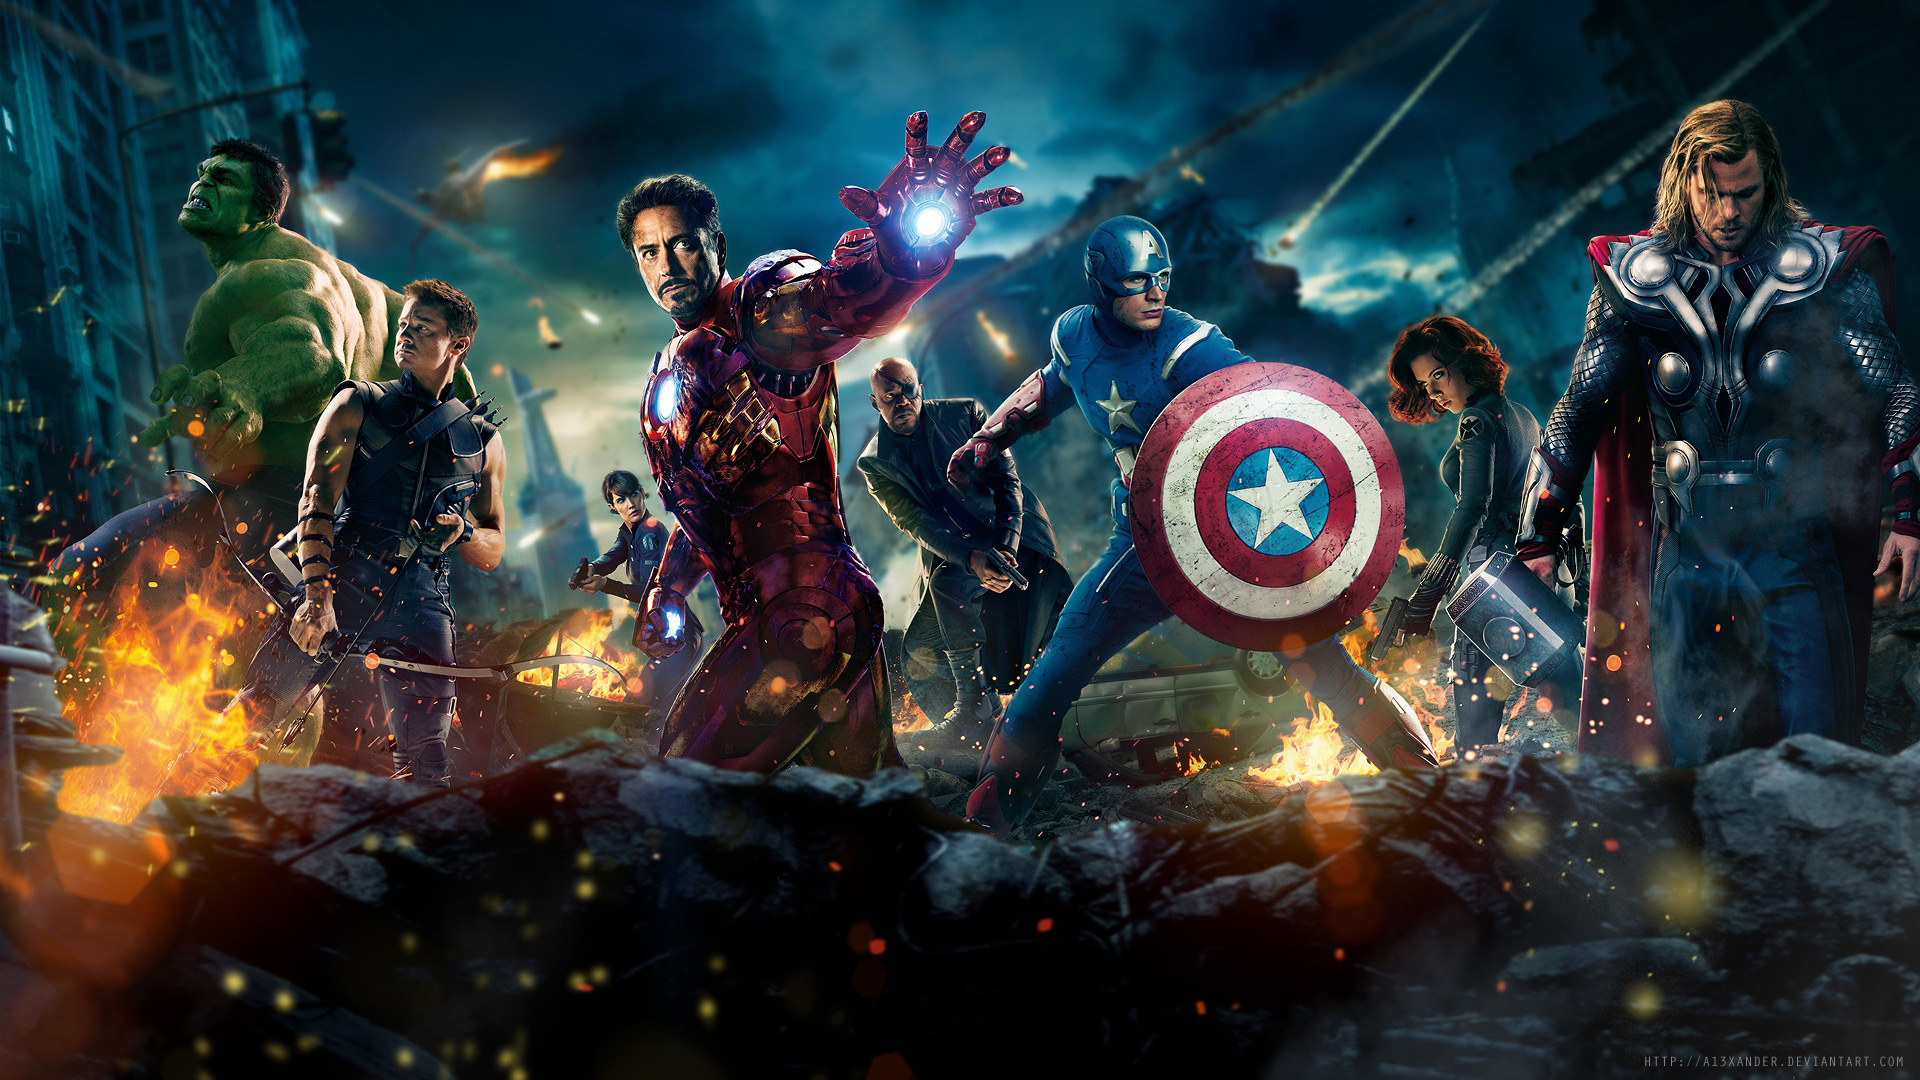 Avengers Full HD Wallpapers download 1080p desktop backgrounds 1920x1080